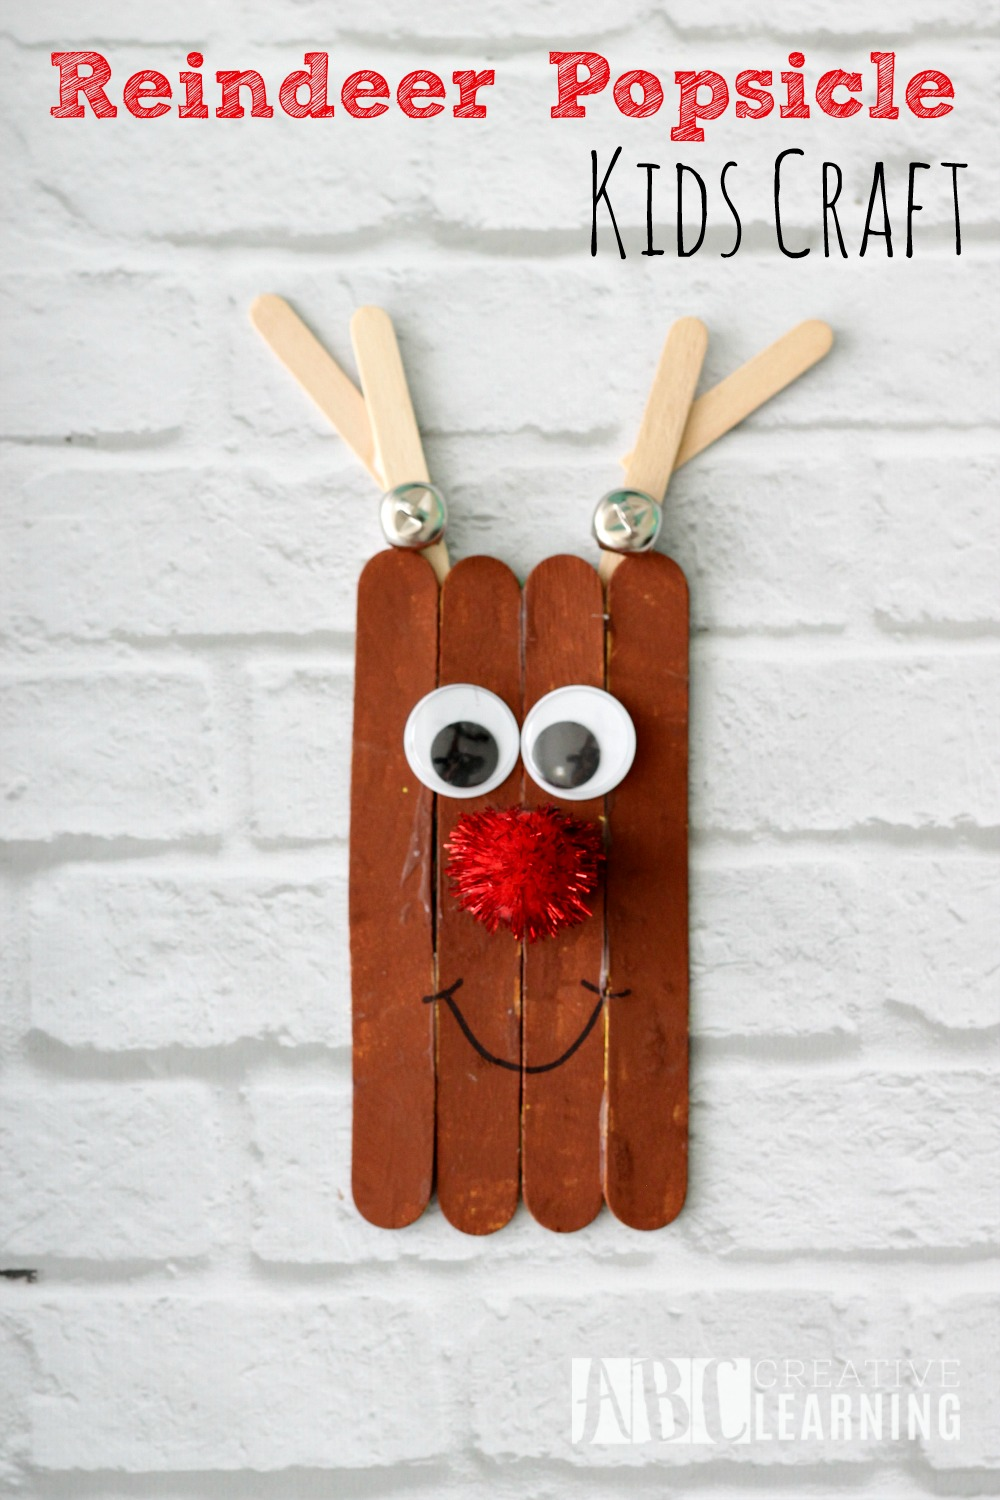 Reindeer Popsicle Craft